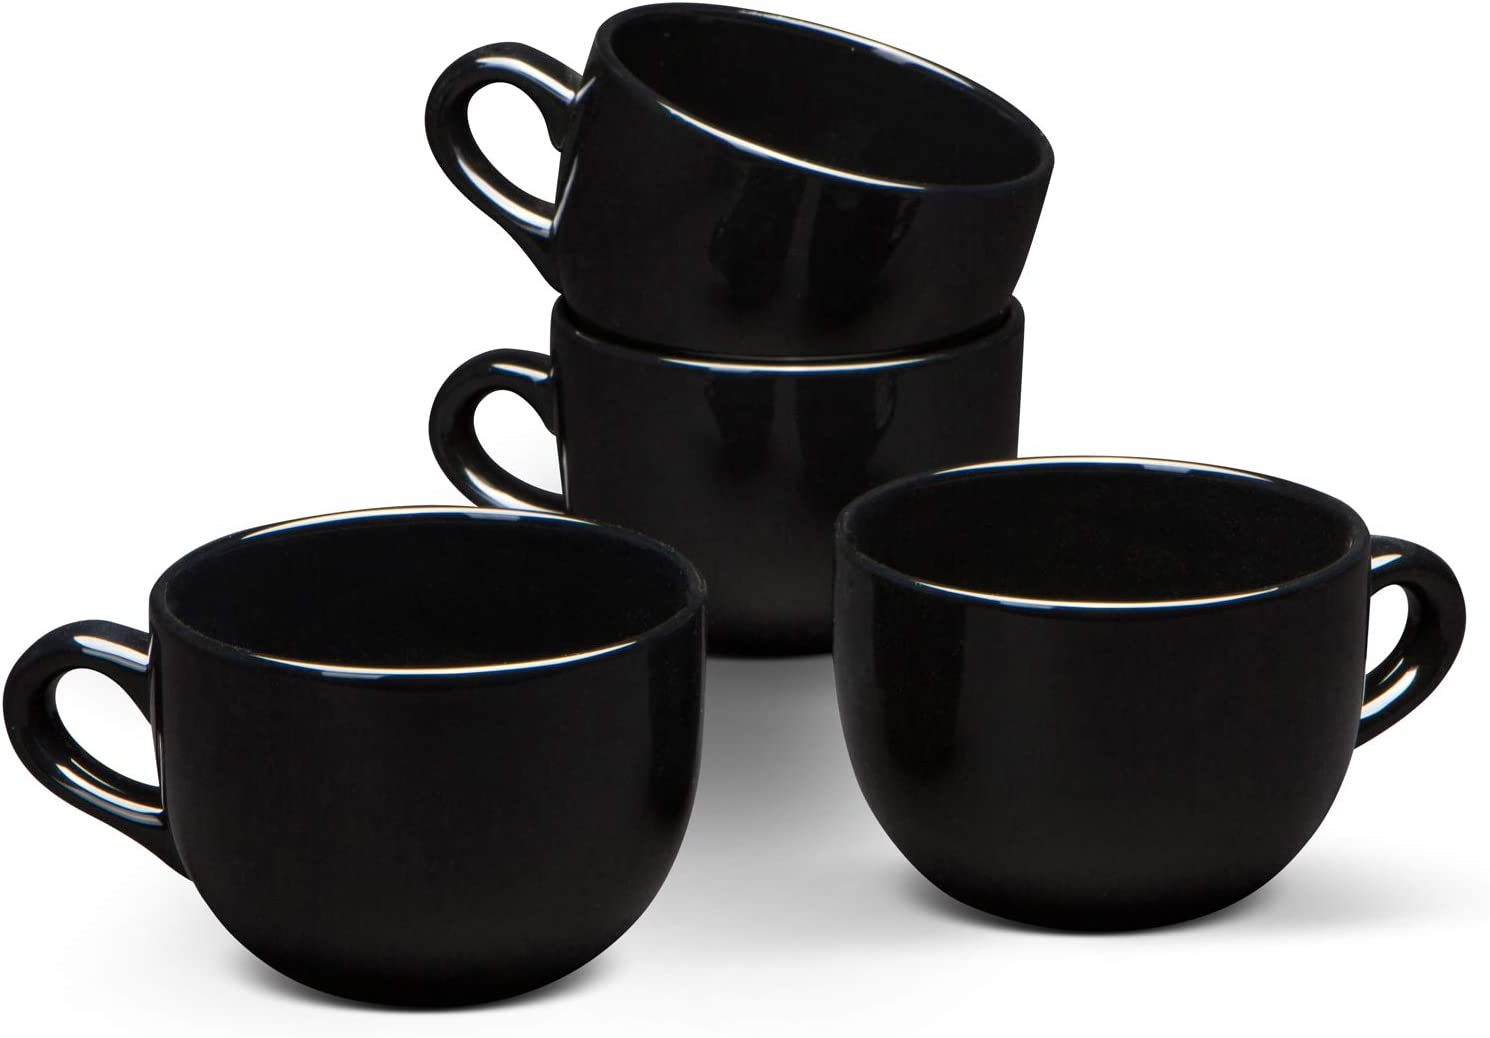 Serami 22oz Black Ceramic Large Soup or Cappuccino Bowl Mugs with Thick Walls, Set of 4